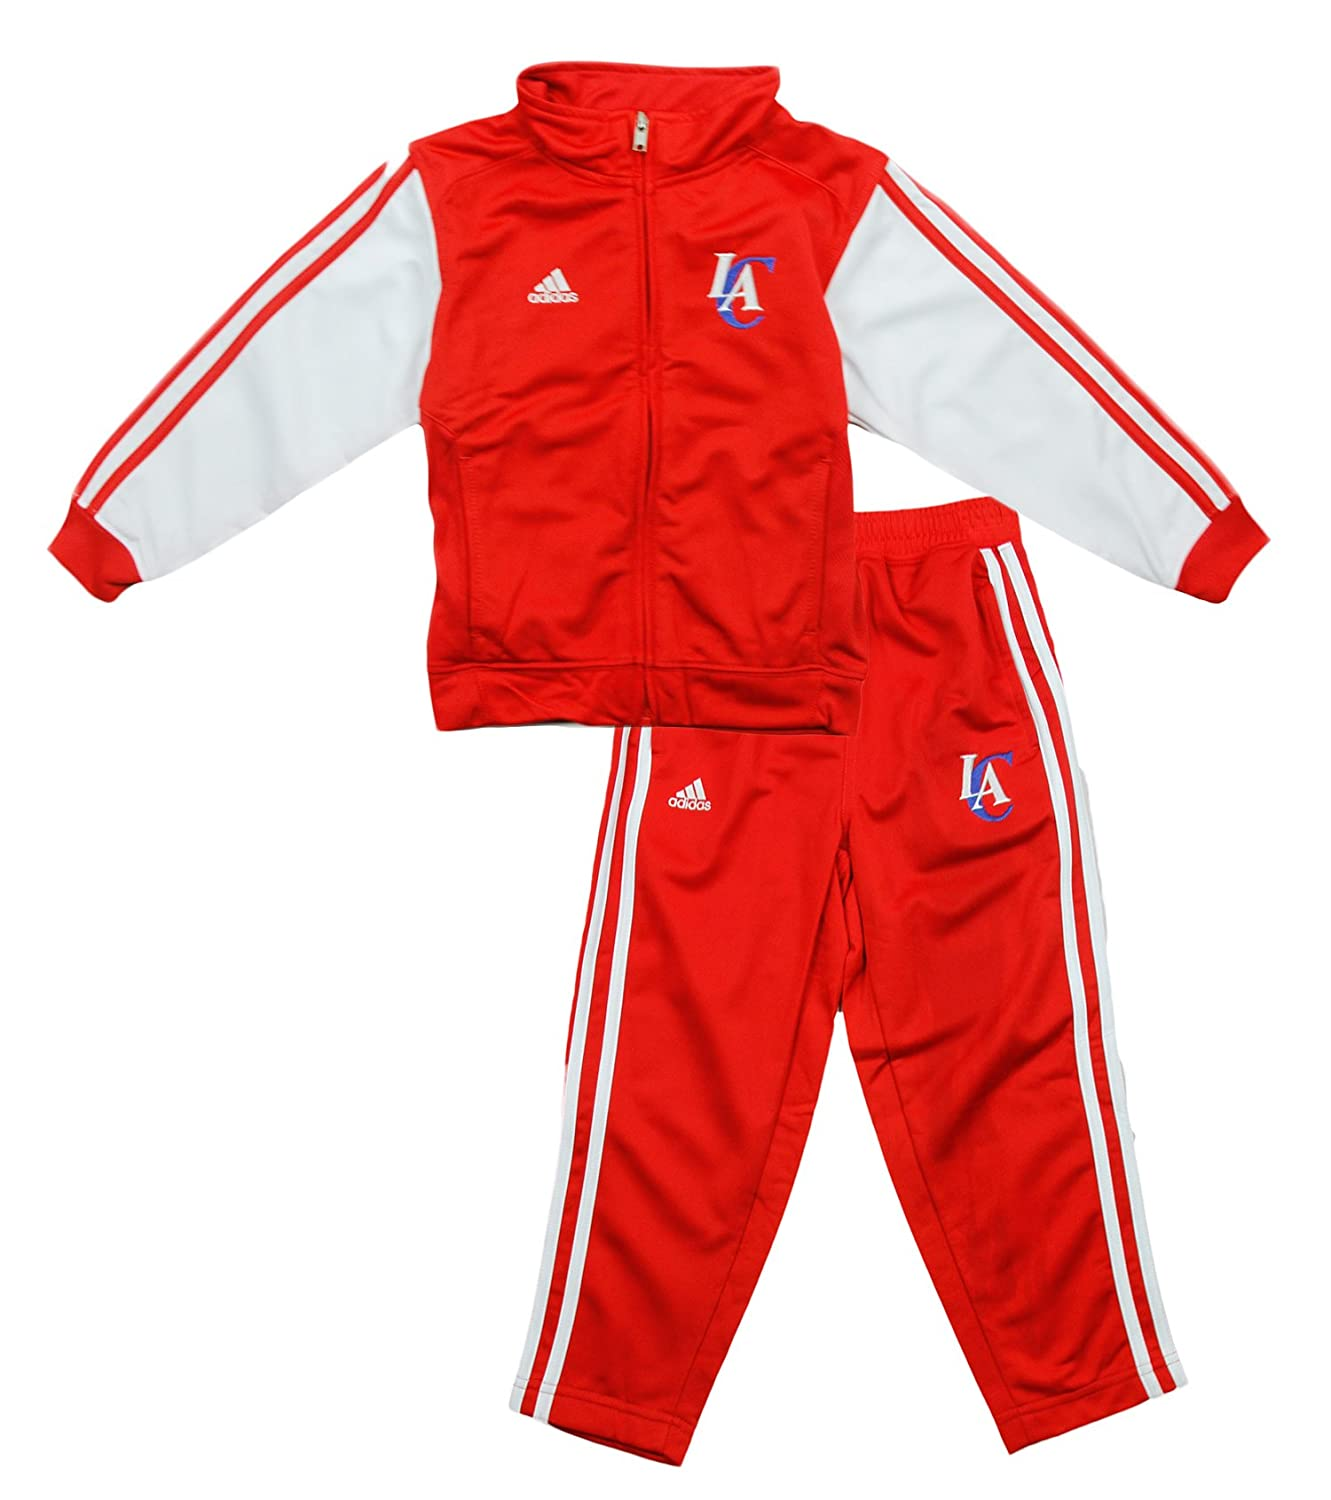 Los Angeles Clippers NBA Toddler Boys Full Zip 2 Piece Track Jacket and Pant Set, Red Red (2T Red)